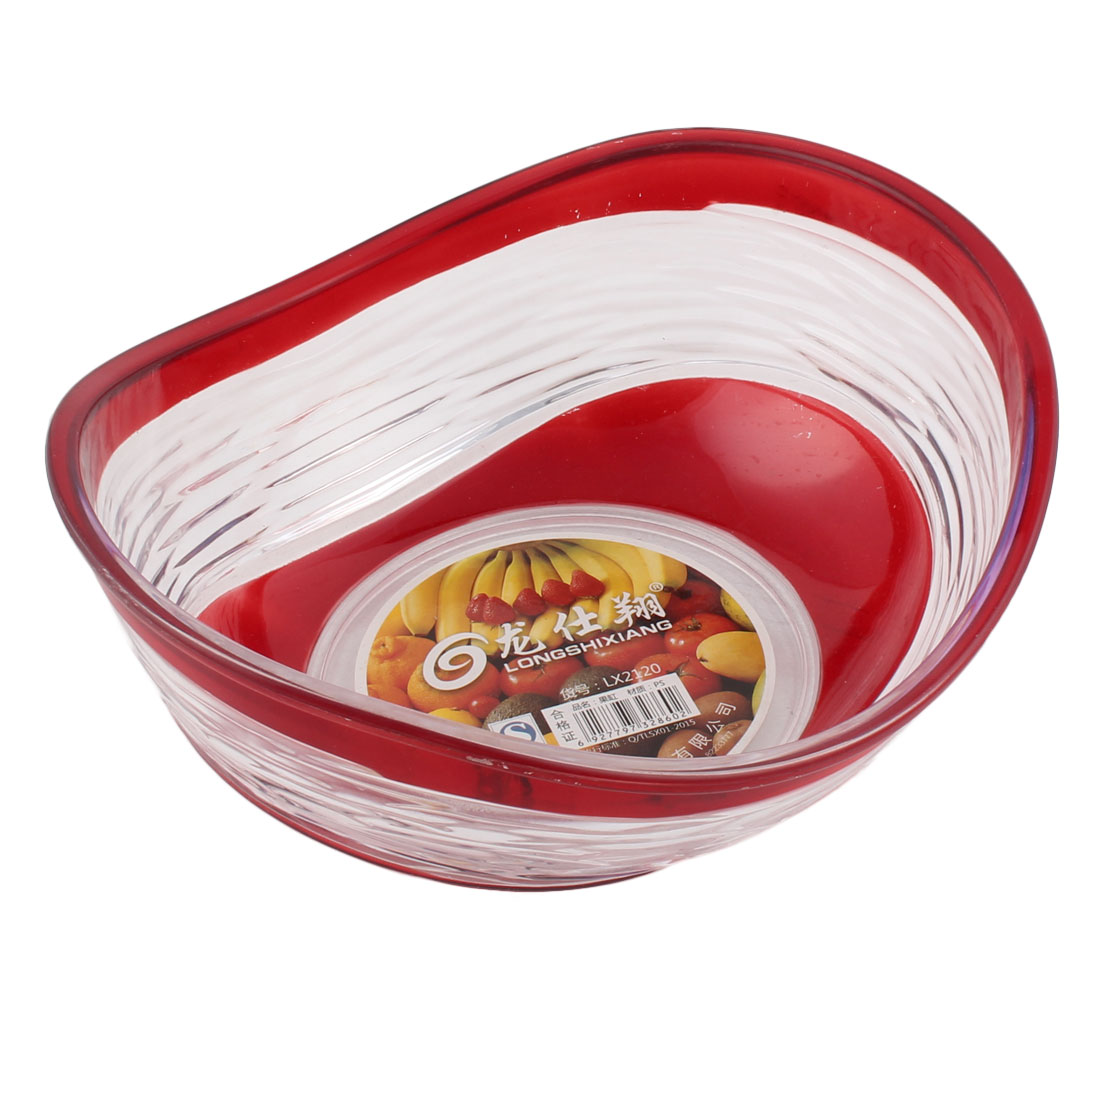 Household Plastic Wave Edge Design Fruit Dessert Dish Plate Container Holder by Unique-Bargains